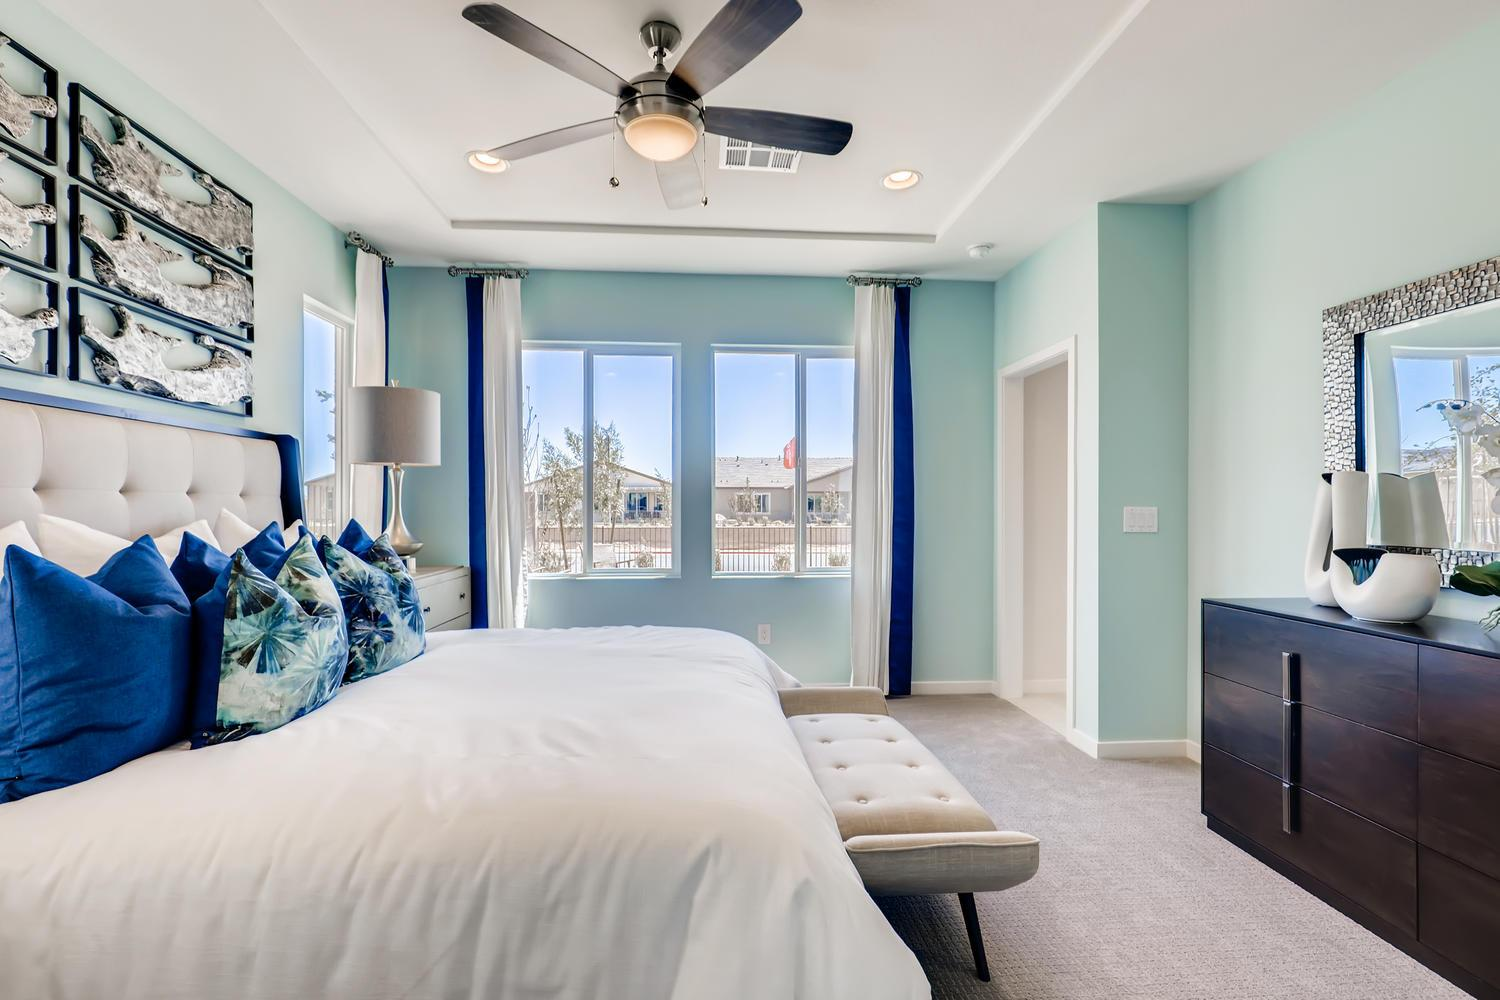 Bedroom featured in the 30 - Holly By Taylor Morrison in Las Vegas, NV